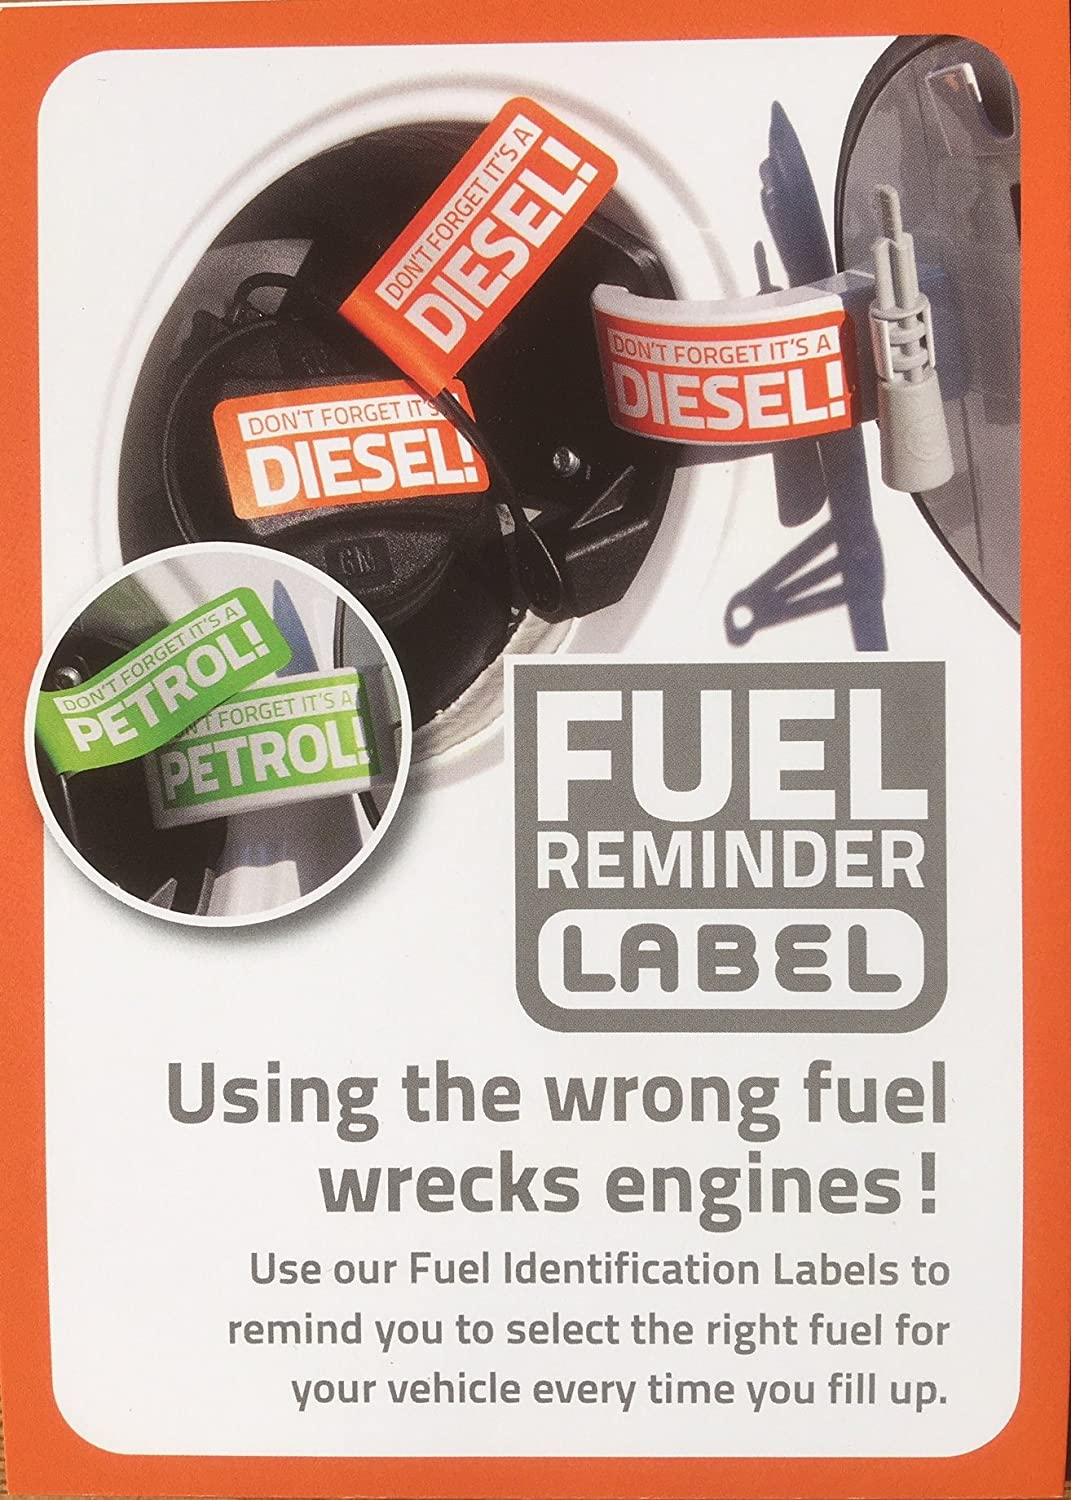 3 PETROL ONLY Engine and 3 DIESEL ONLY Engine Fuel Reminder Stickers to Label your Car Van Coach Lorry Motorbike Vehicle 28mm x 135mm